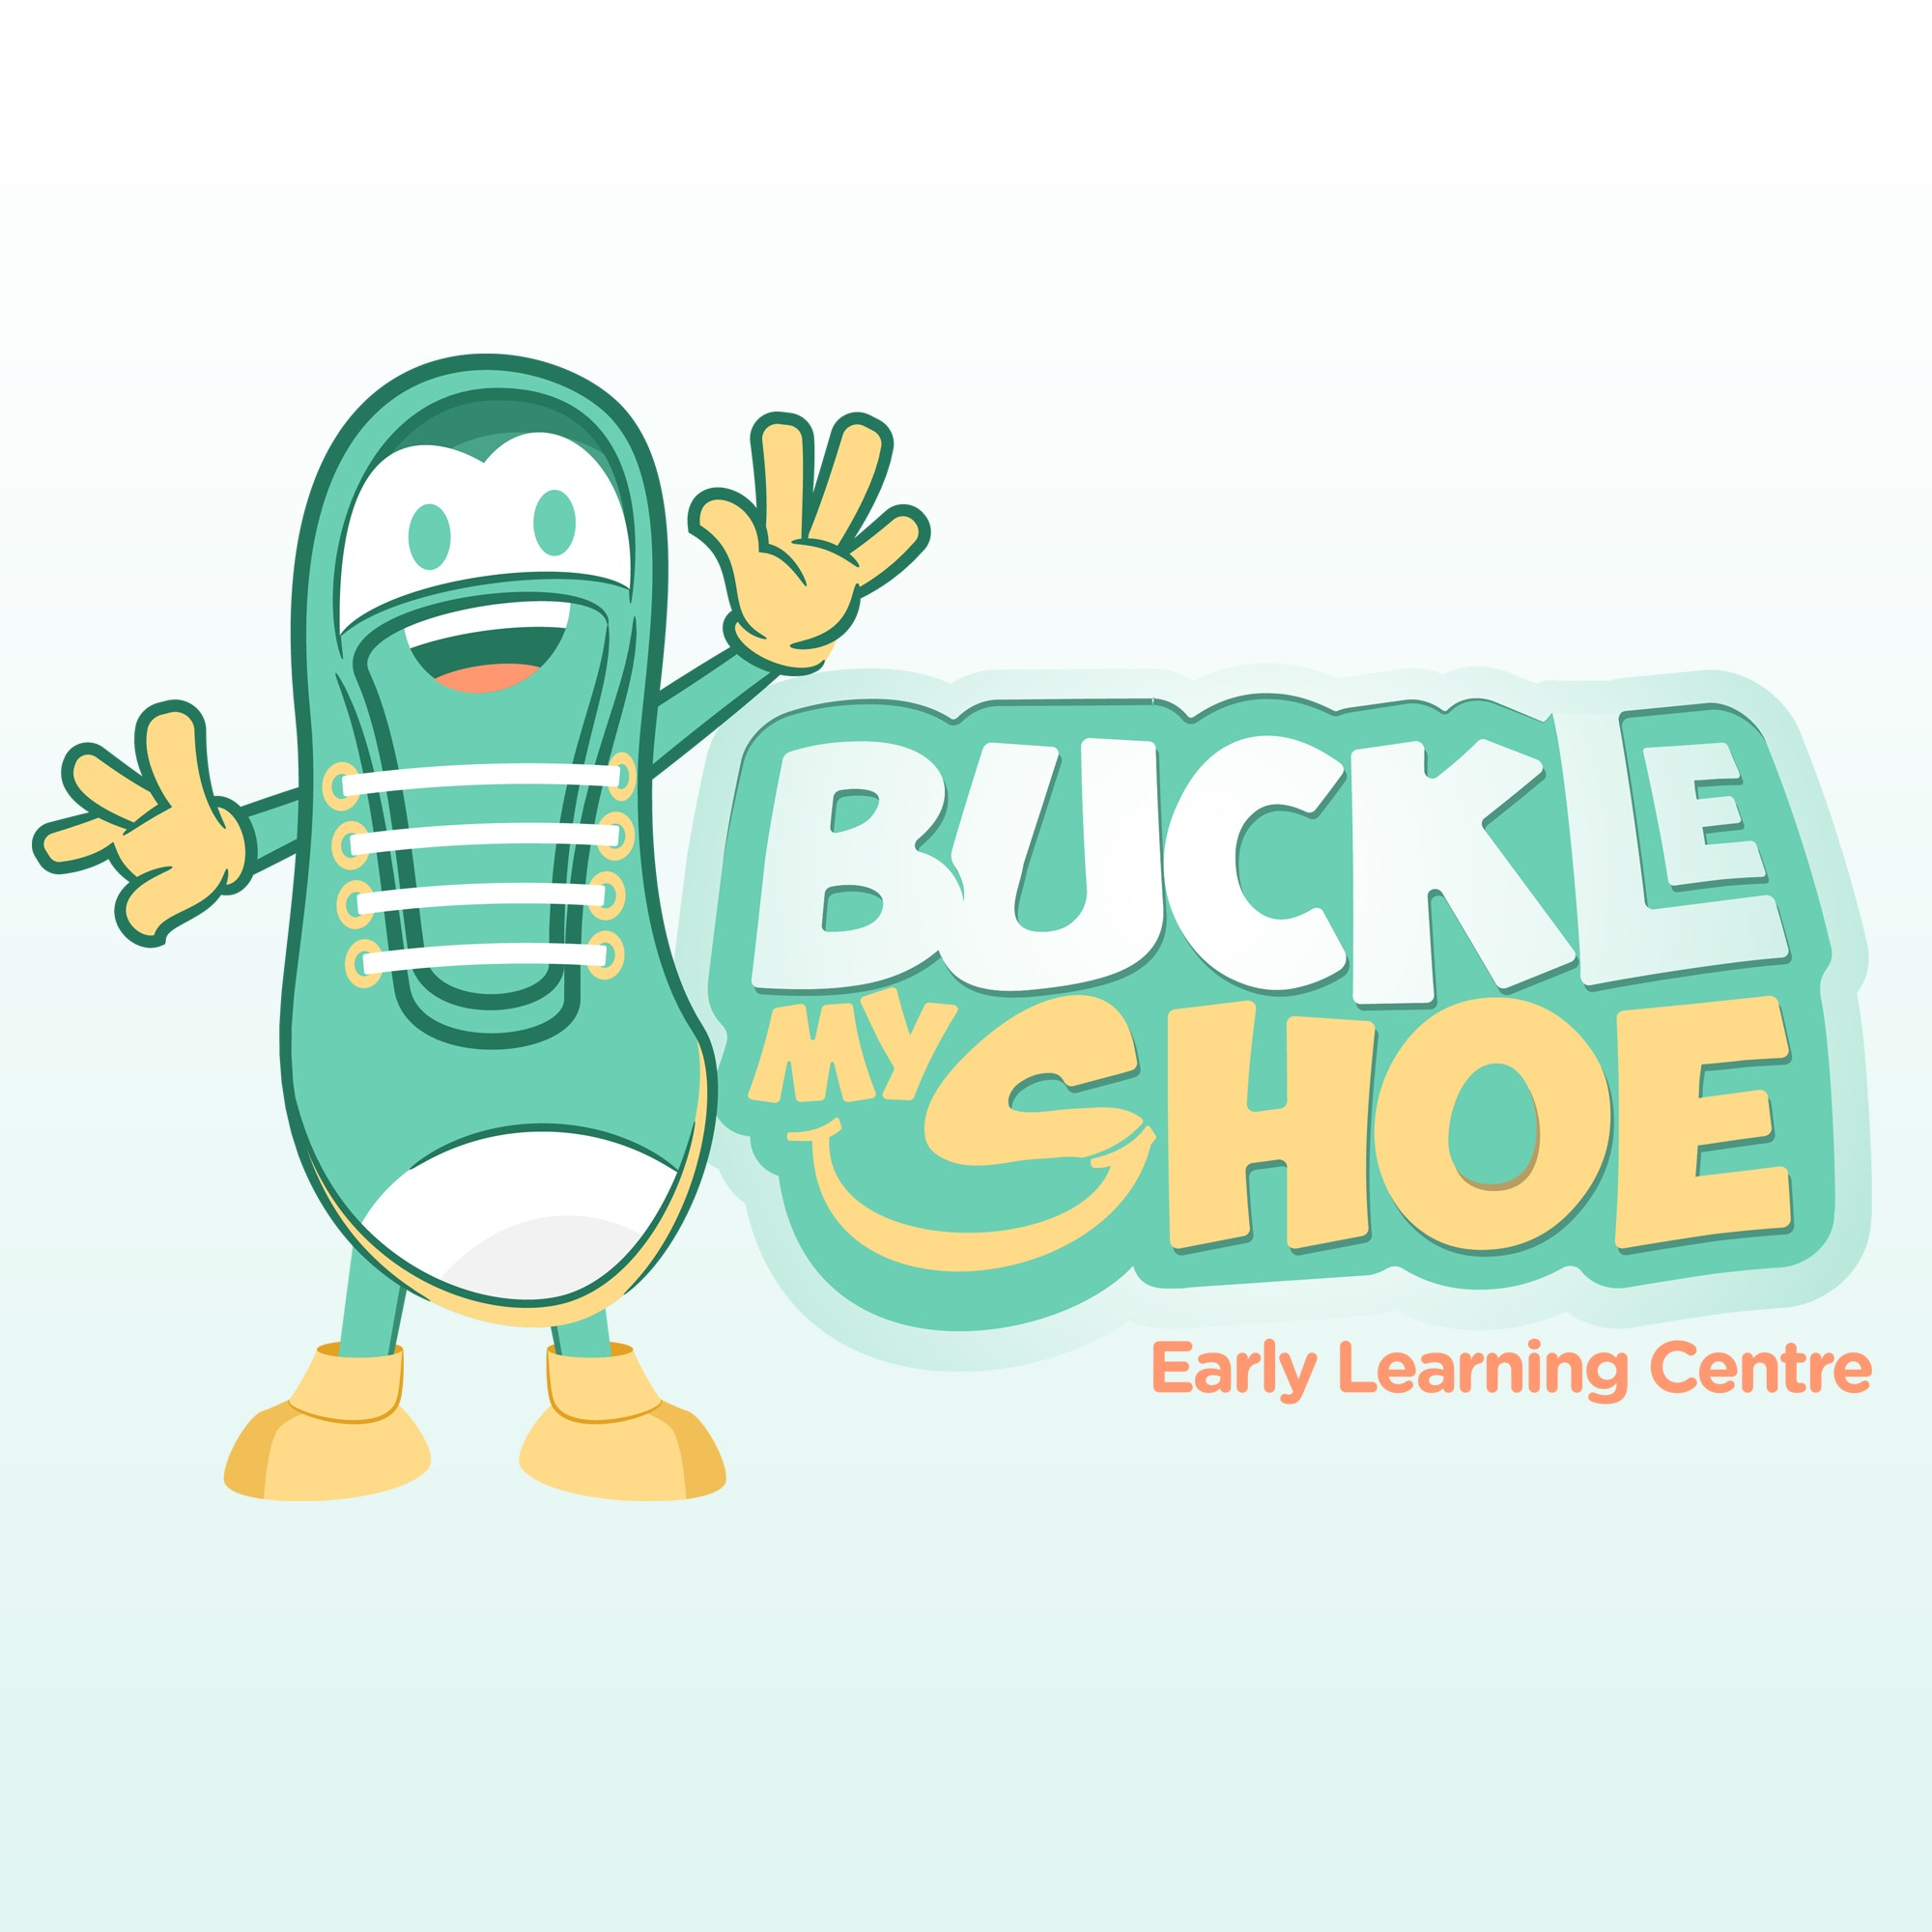 Buckle My Shoe Early Learning Centre